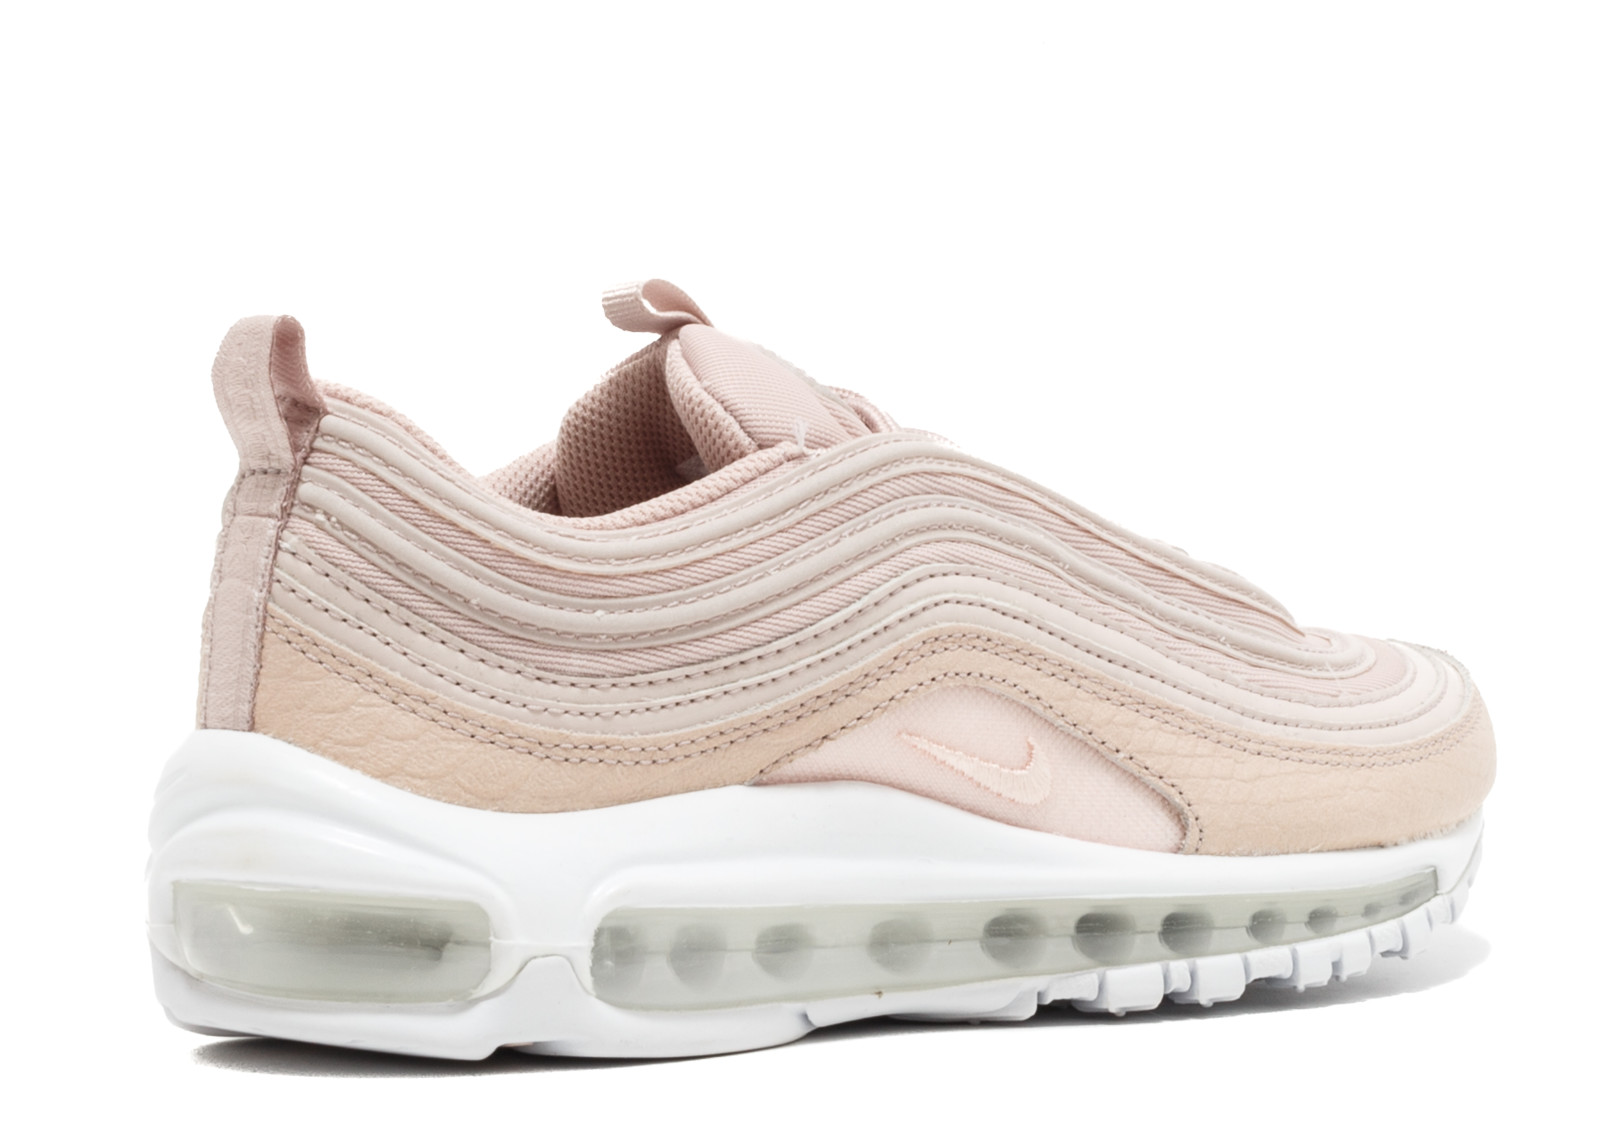 Air Max 97 Silt Red (W) — the curated goods